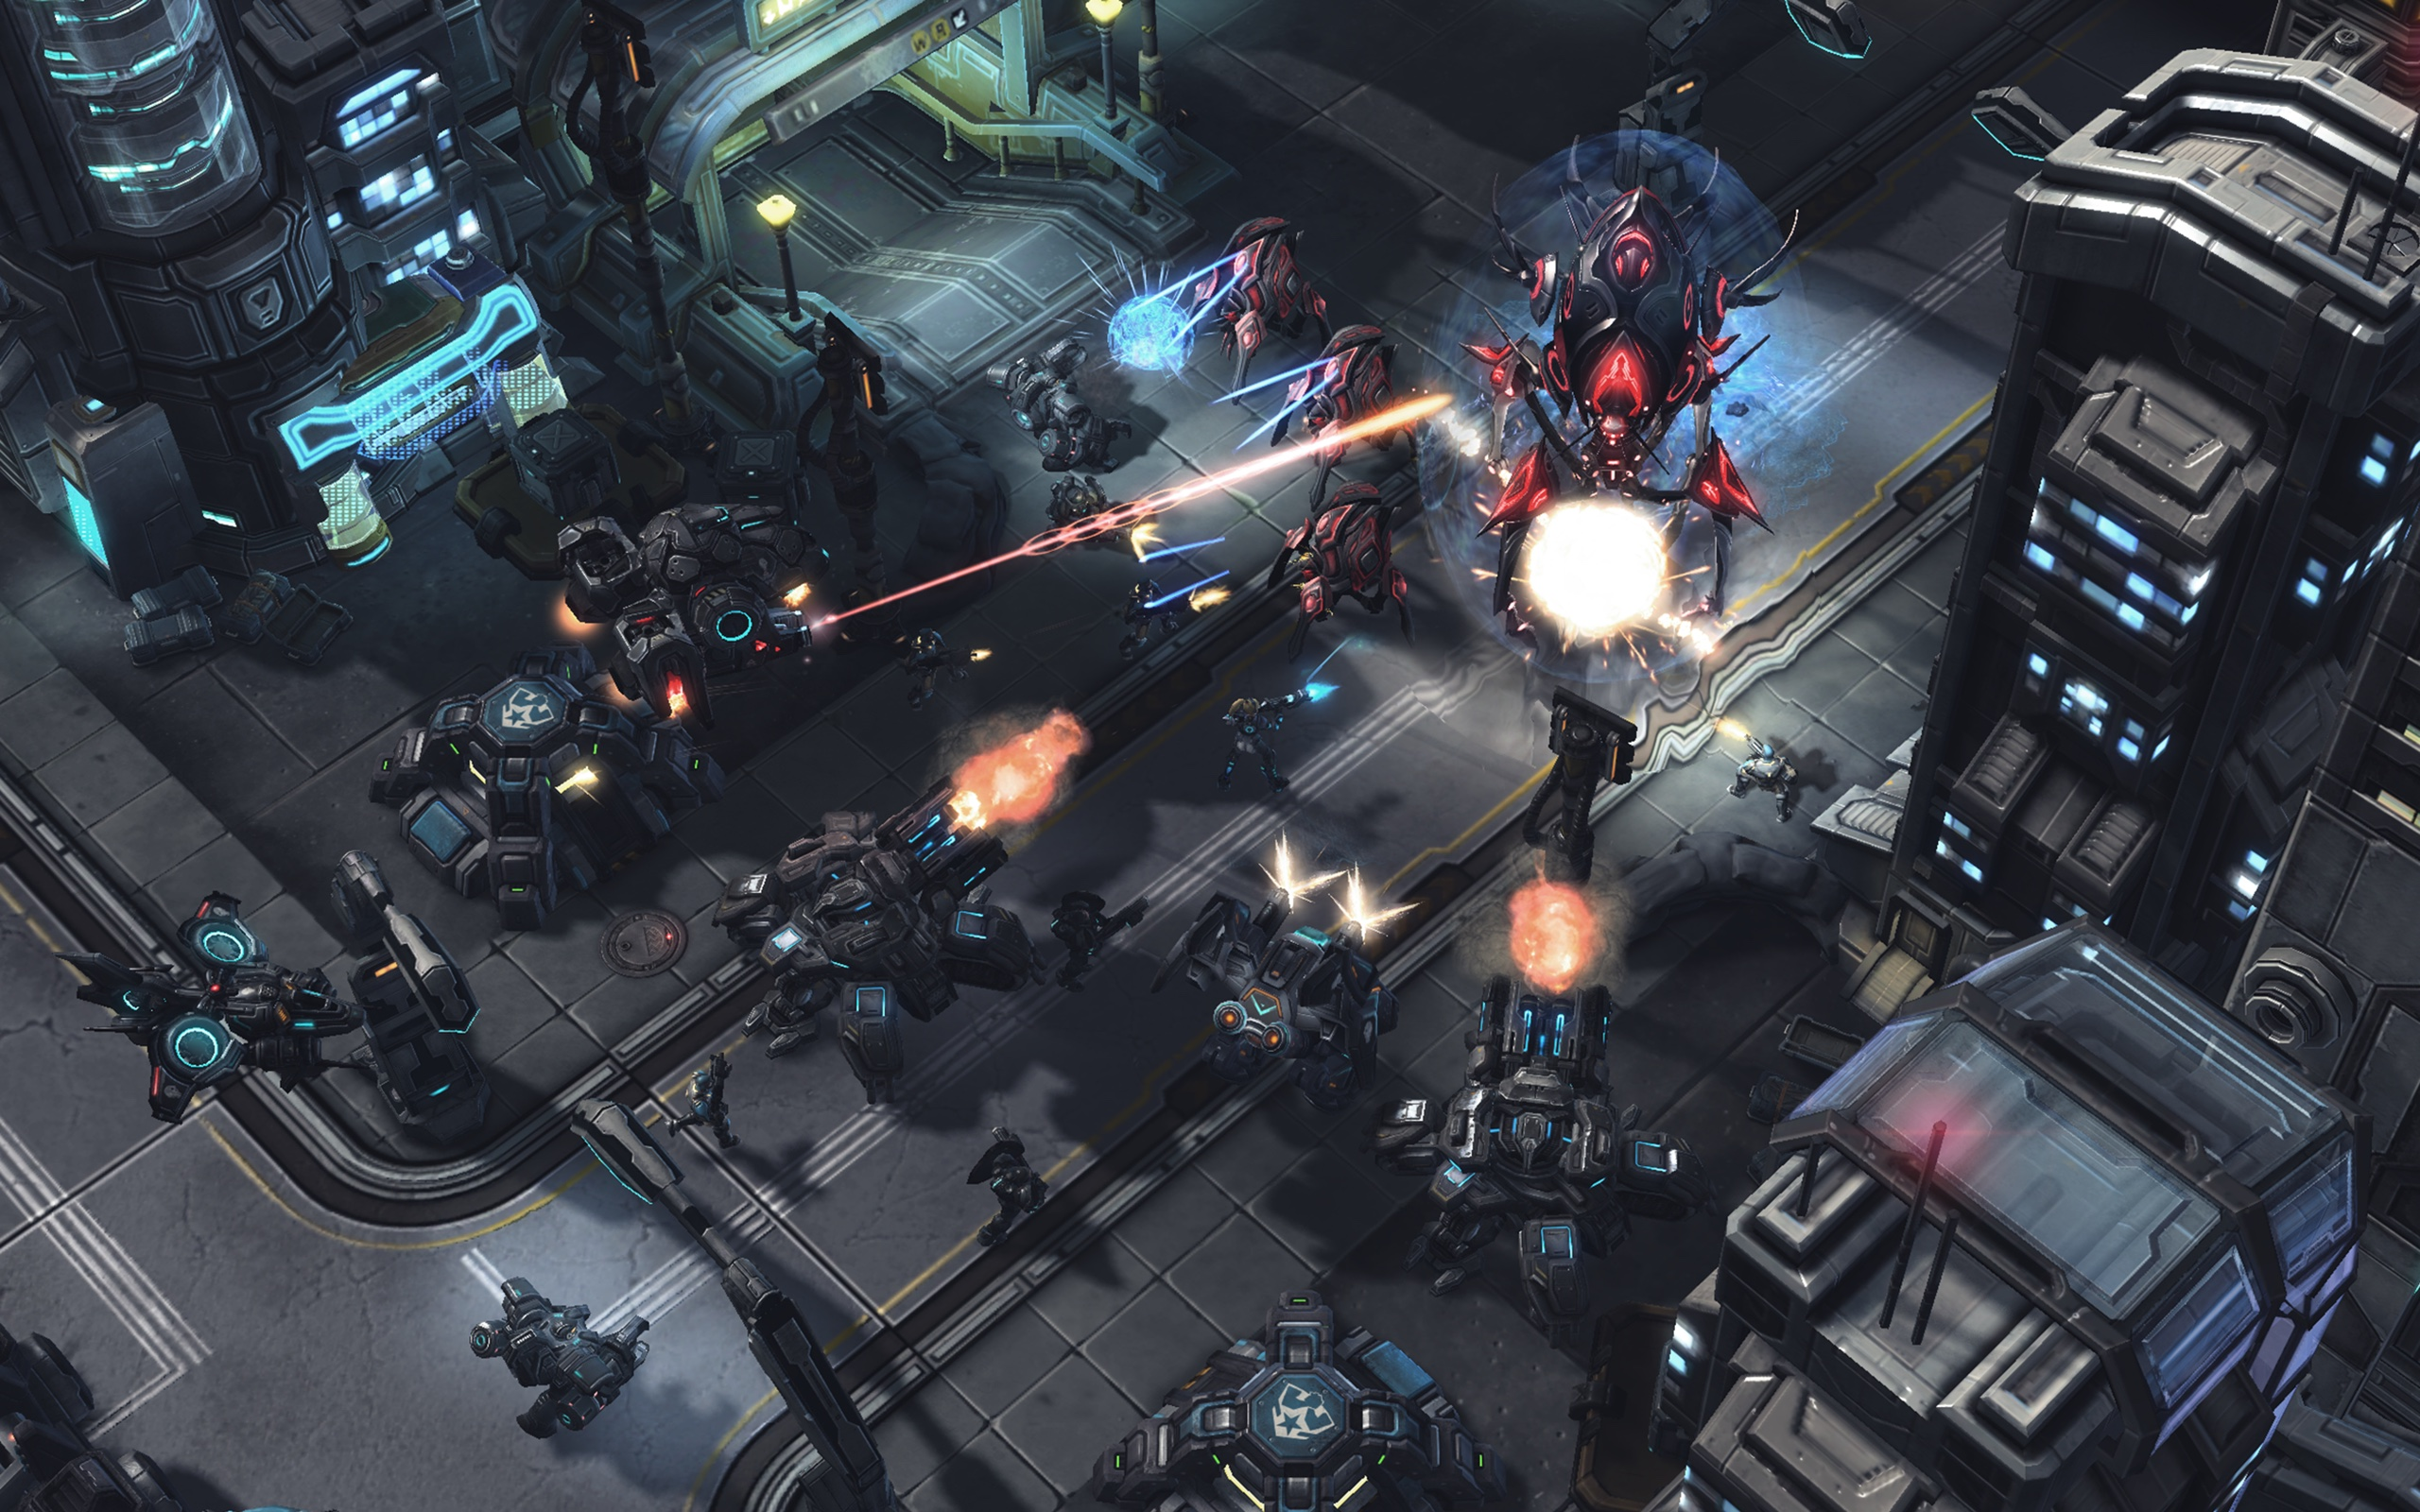 StarCraft 2 is going to free to play later this month